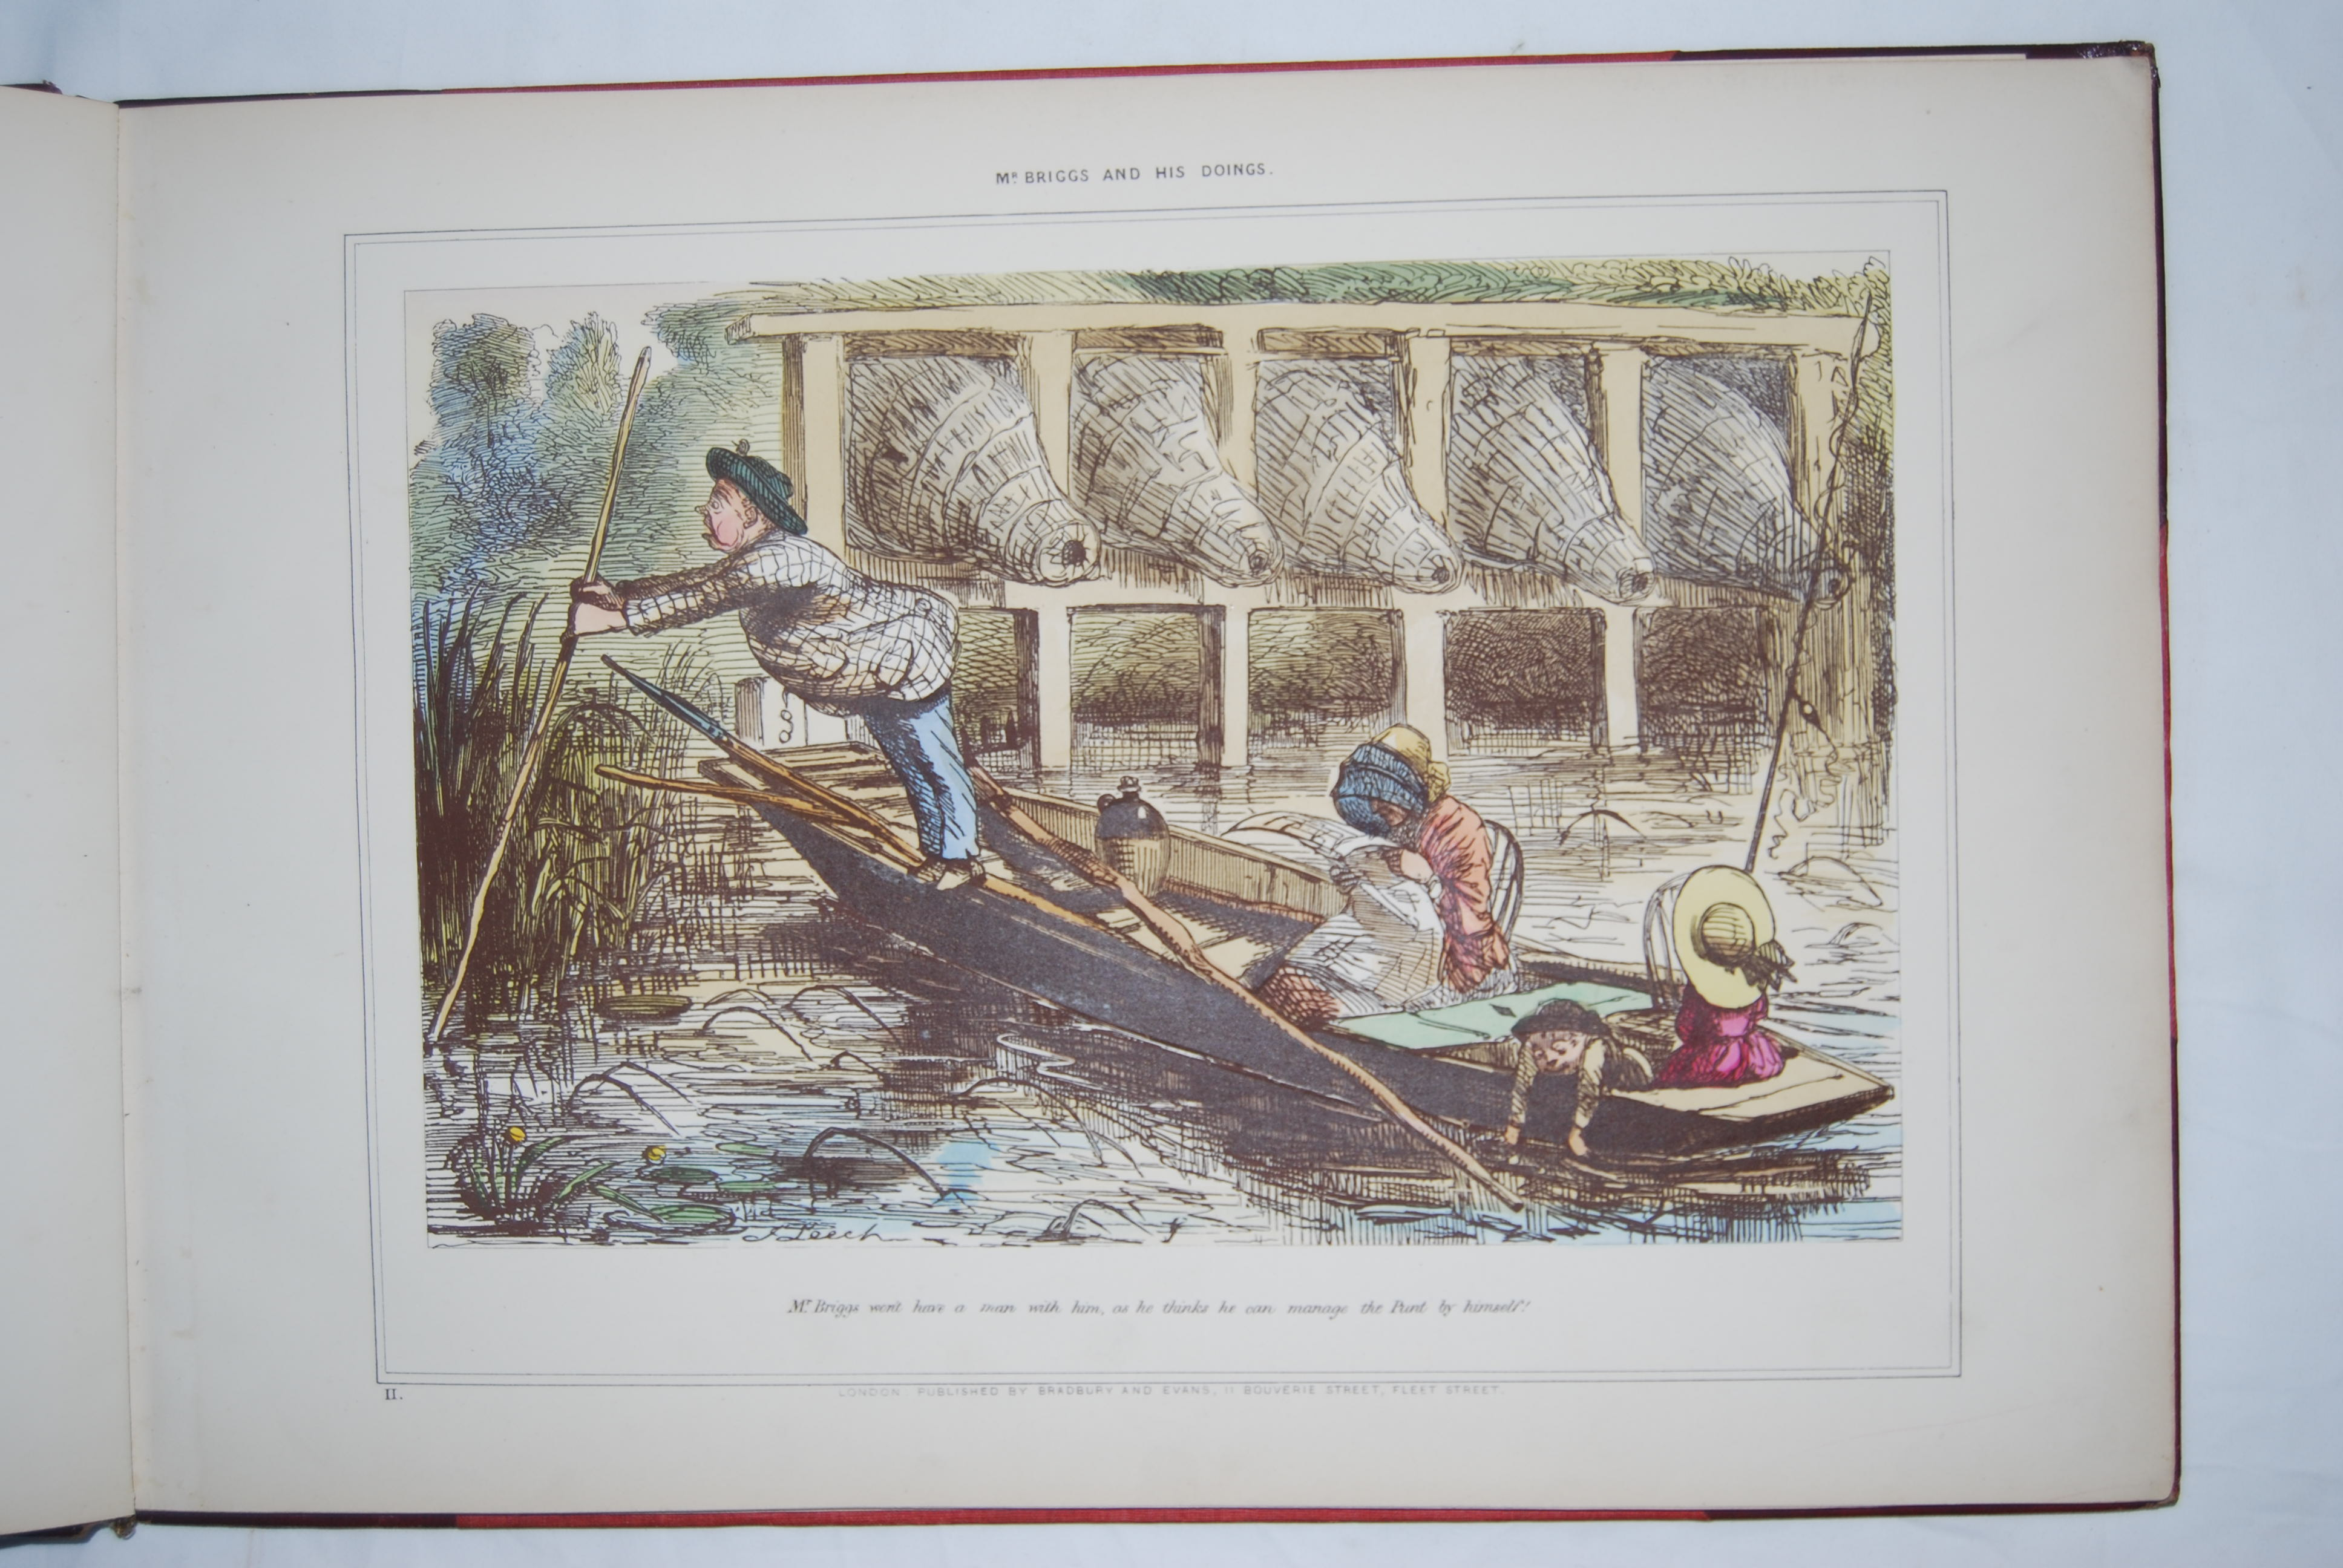 Image for MR. BRIGGS AND HIS DOINGS. [FISHING].